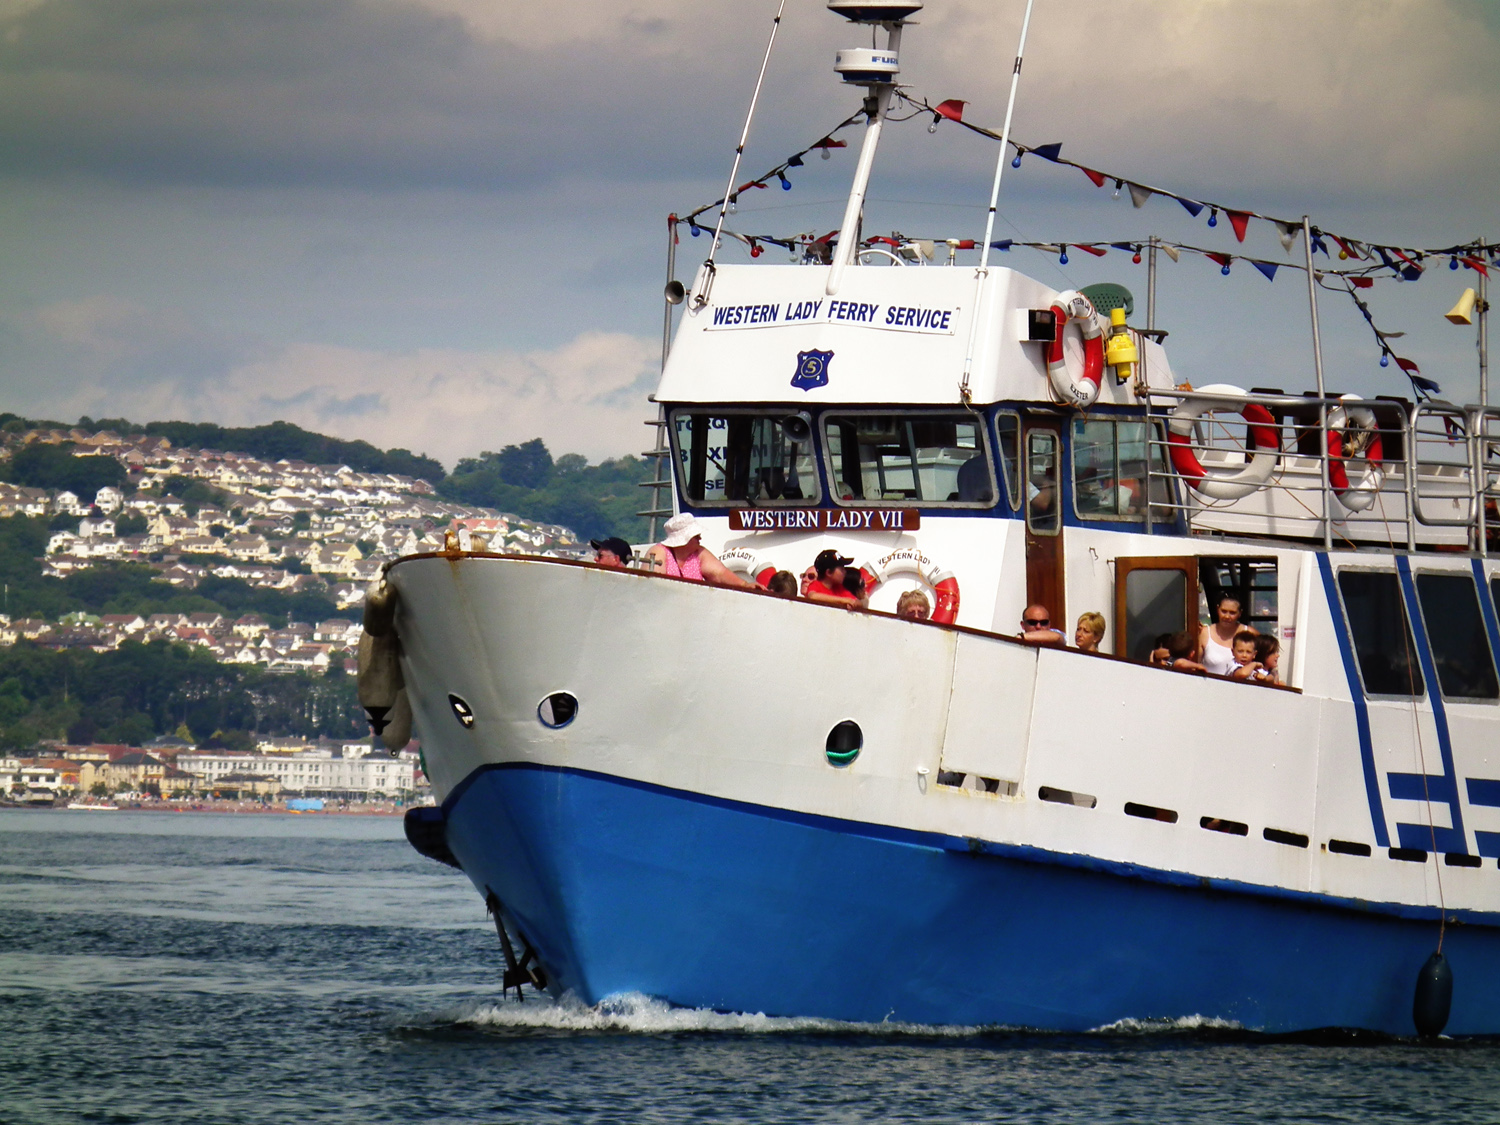 Boat services link the English Riviera towns of Torquay, Paignton and Brixham